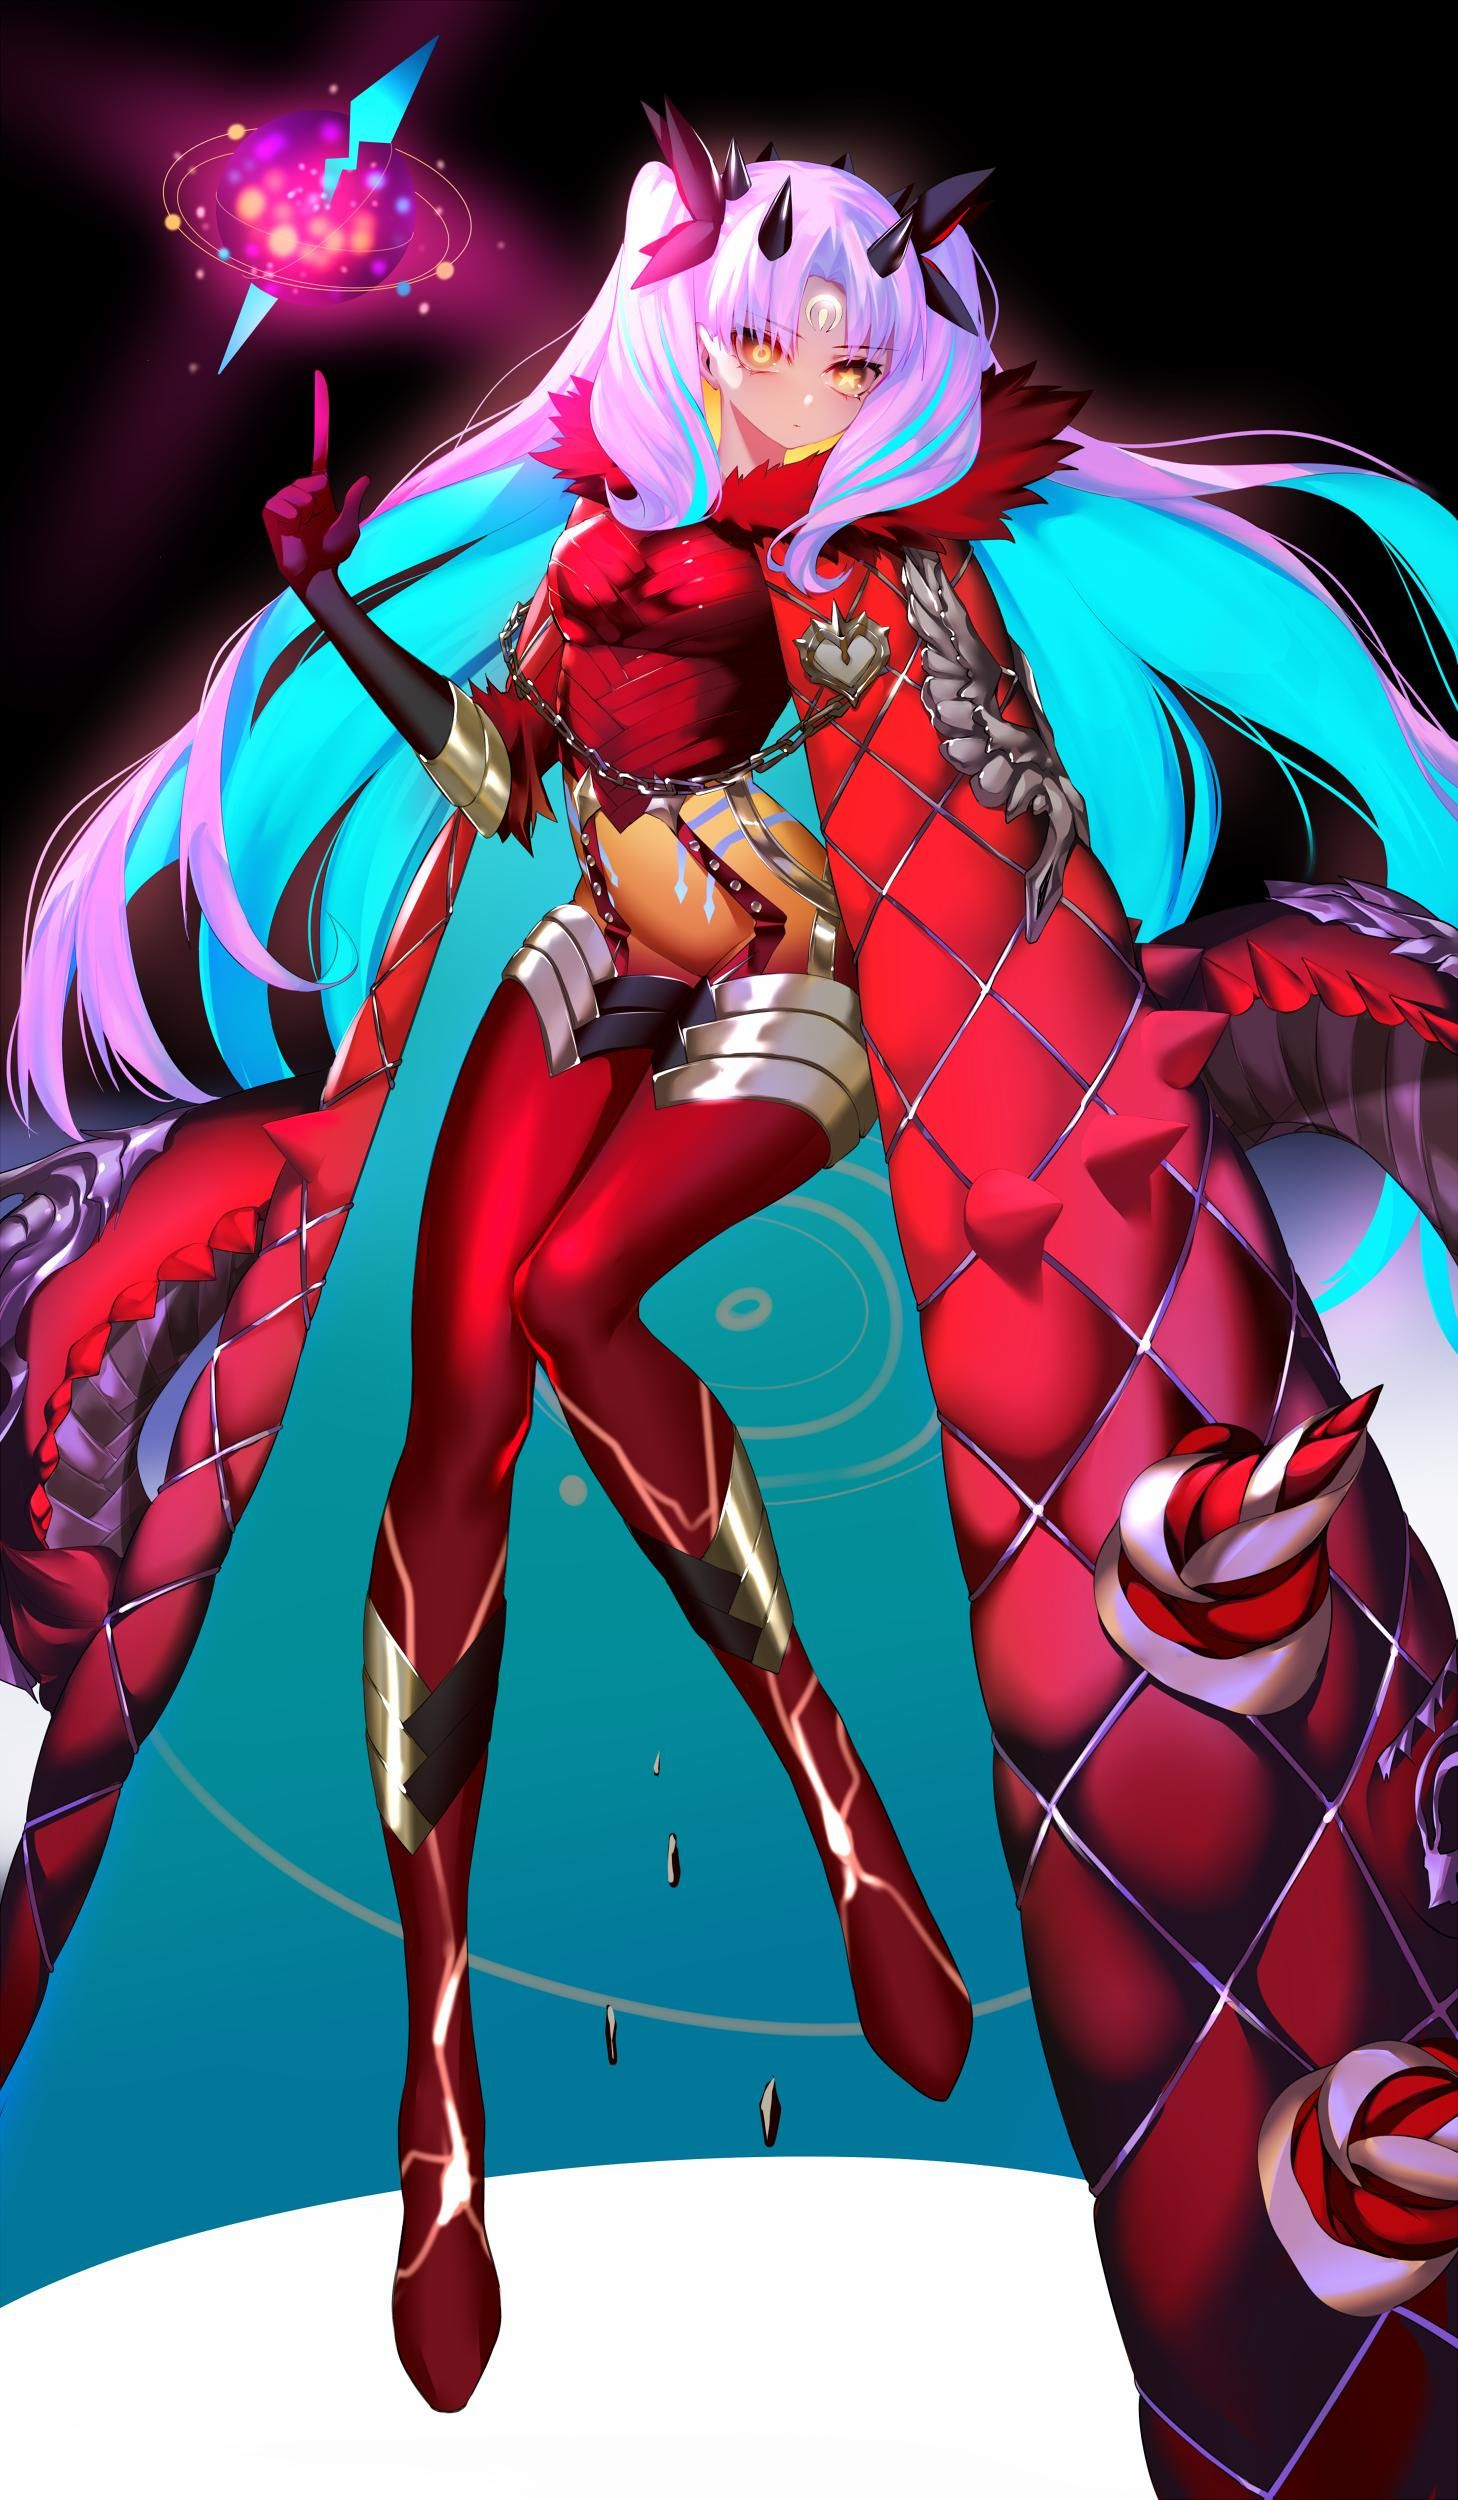 Pin by noah on space ishtar fate anime series fate